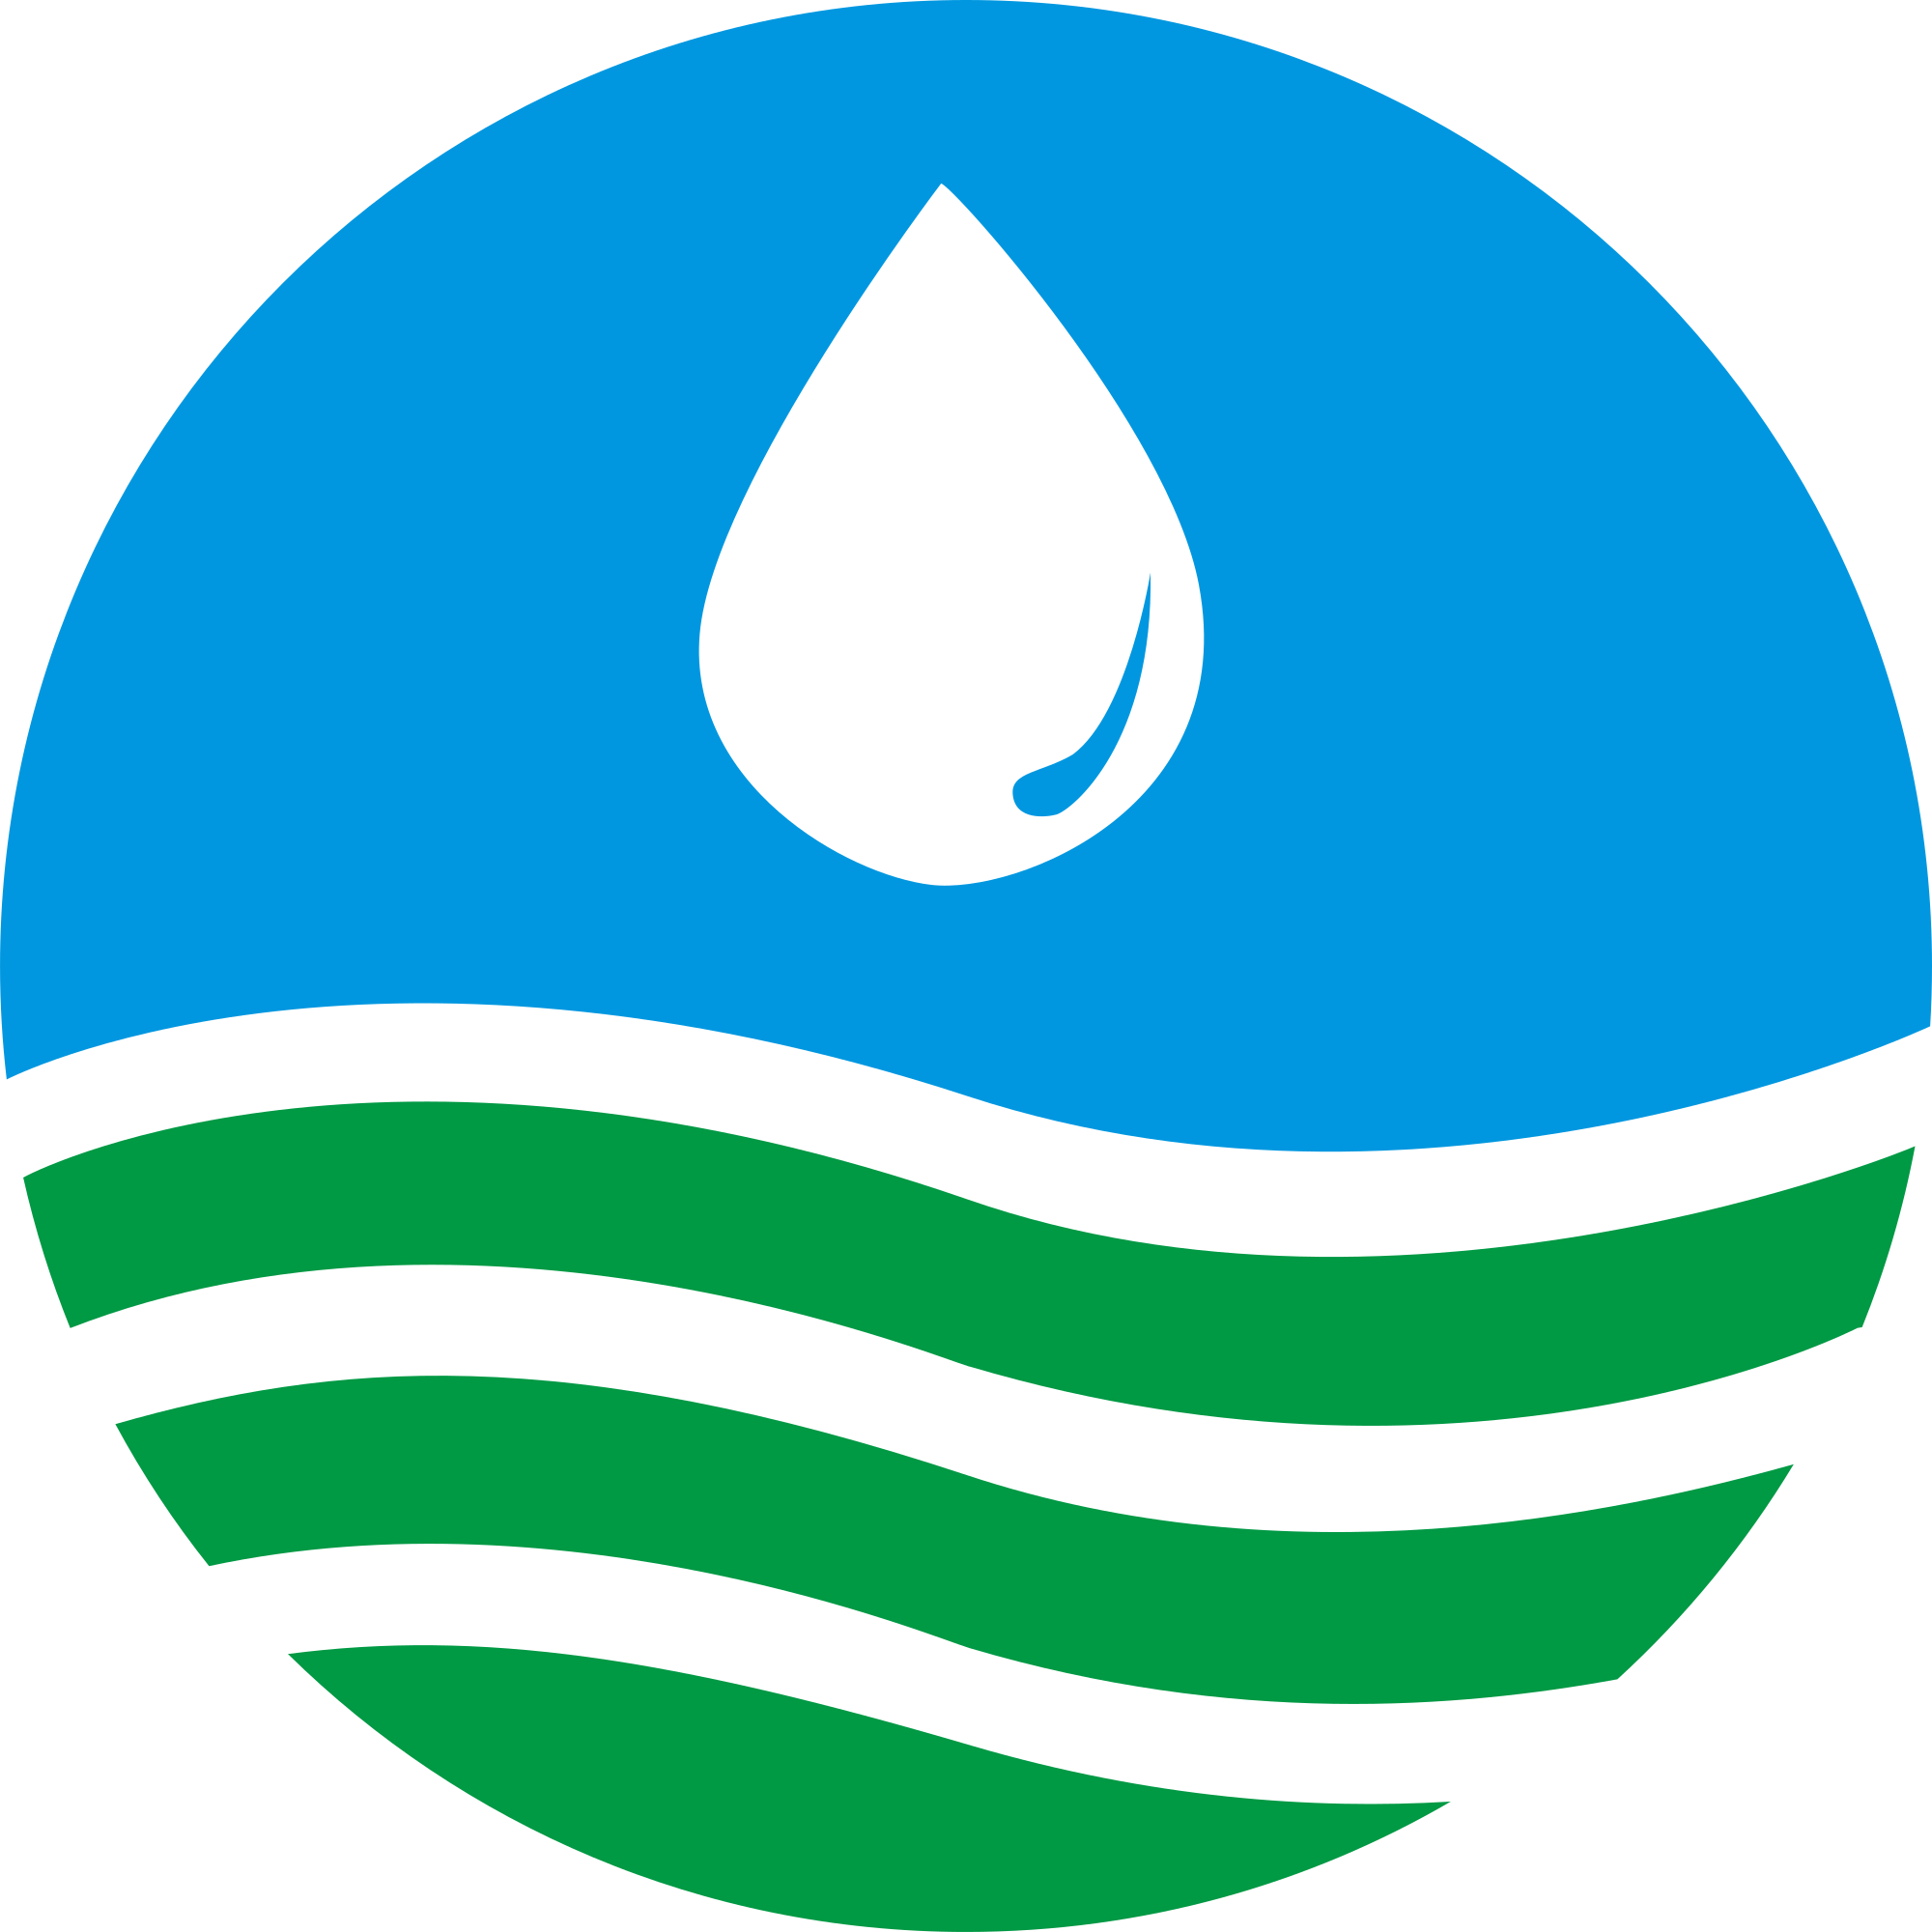 File:ROC Water Resources Agency Seal.svg.